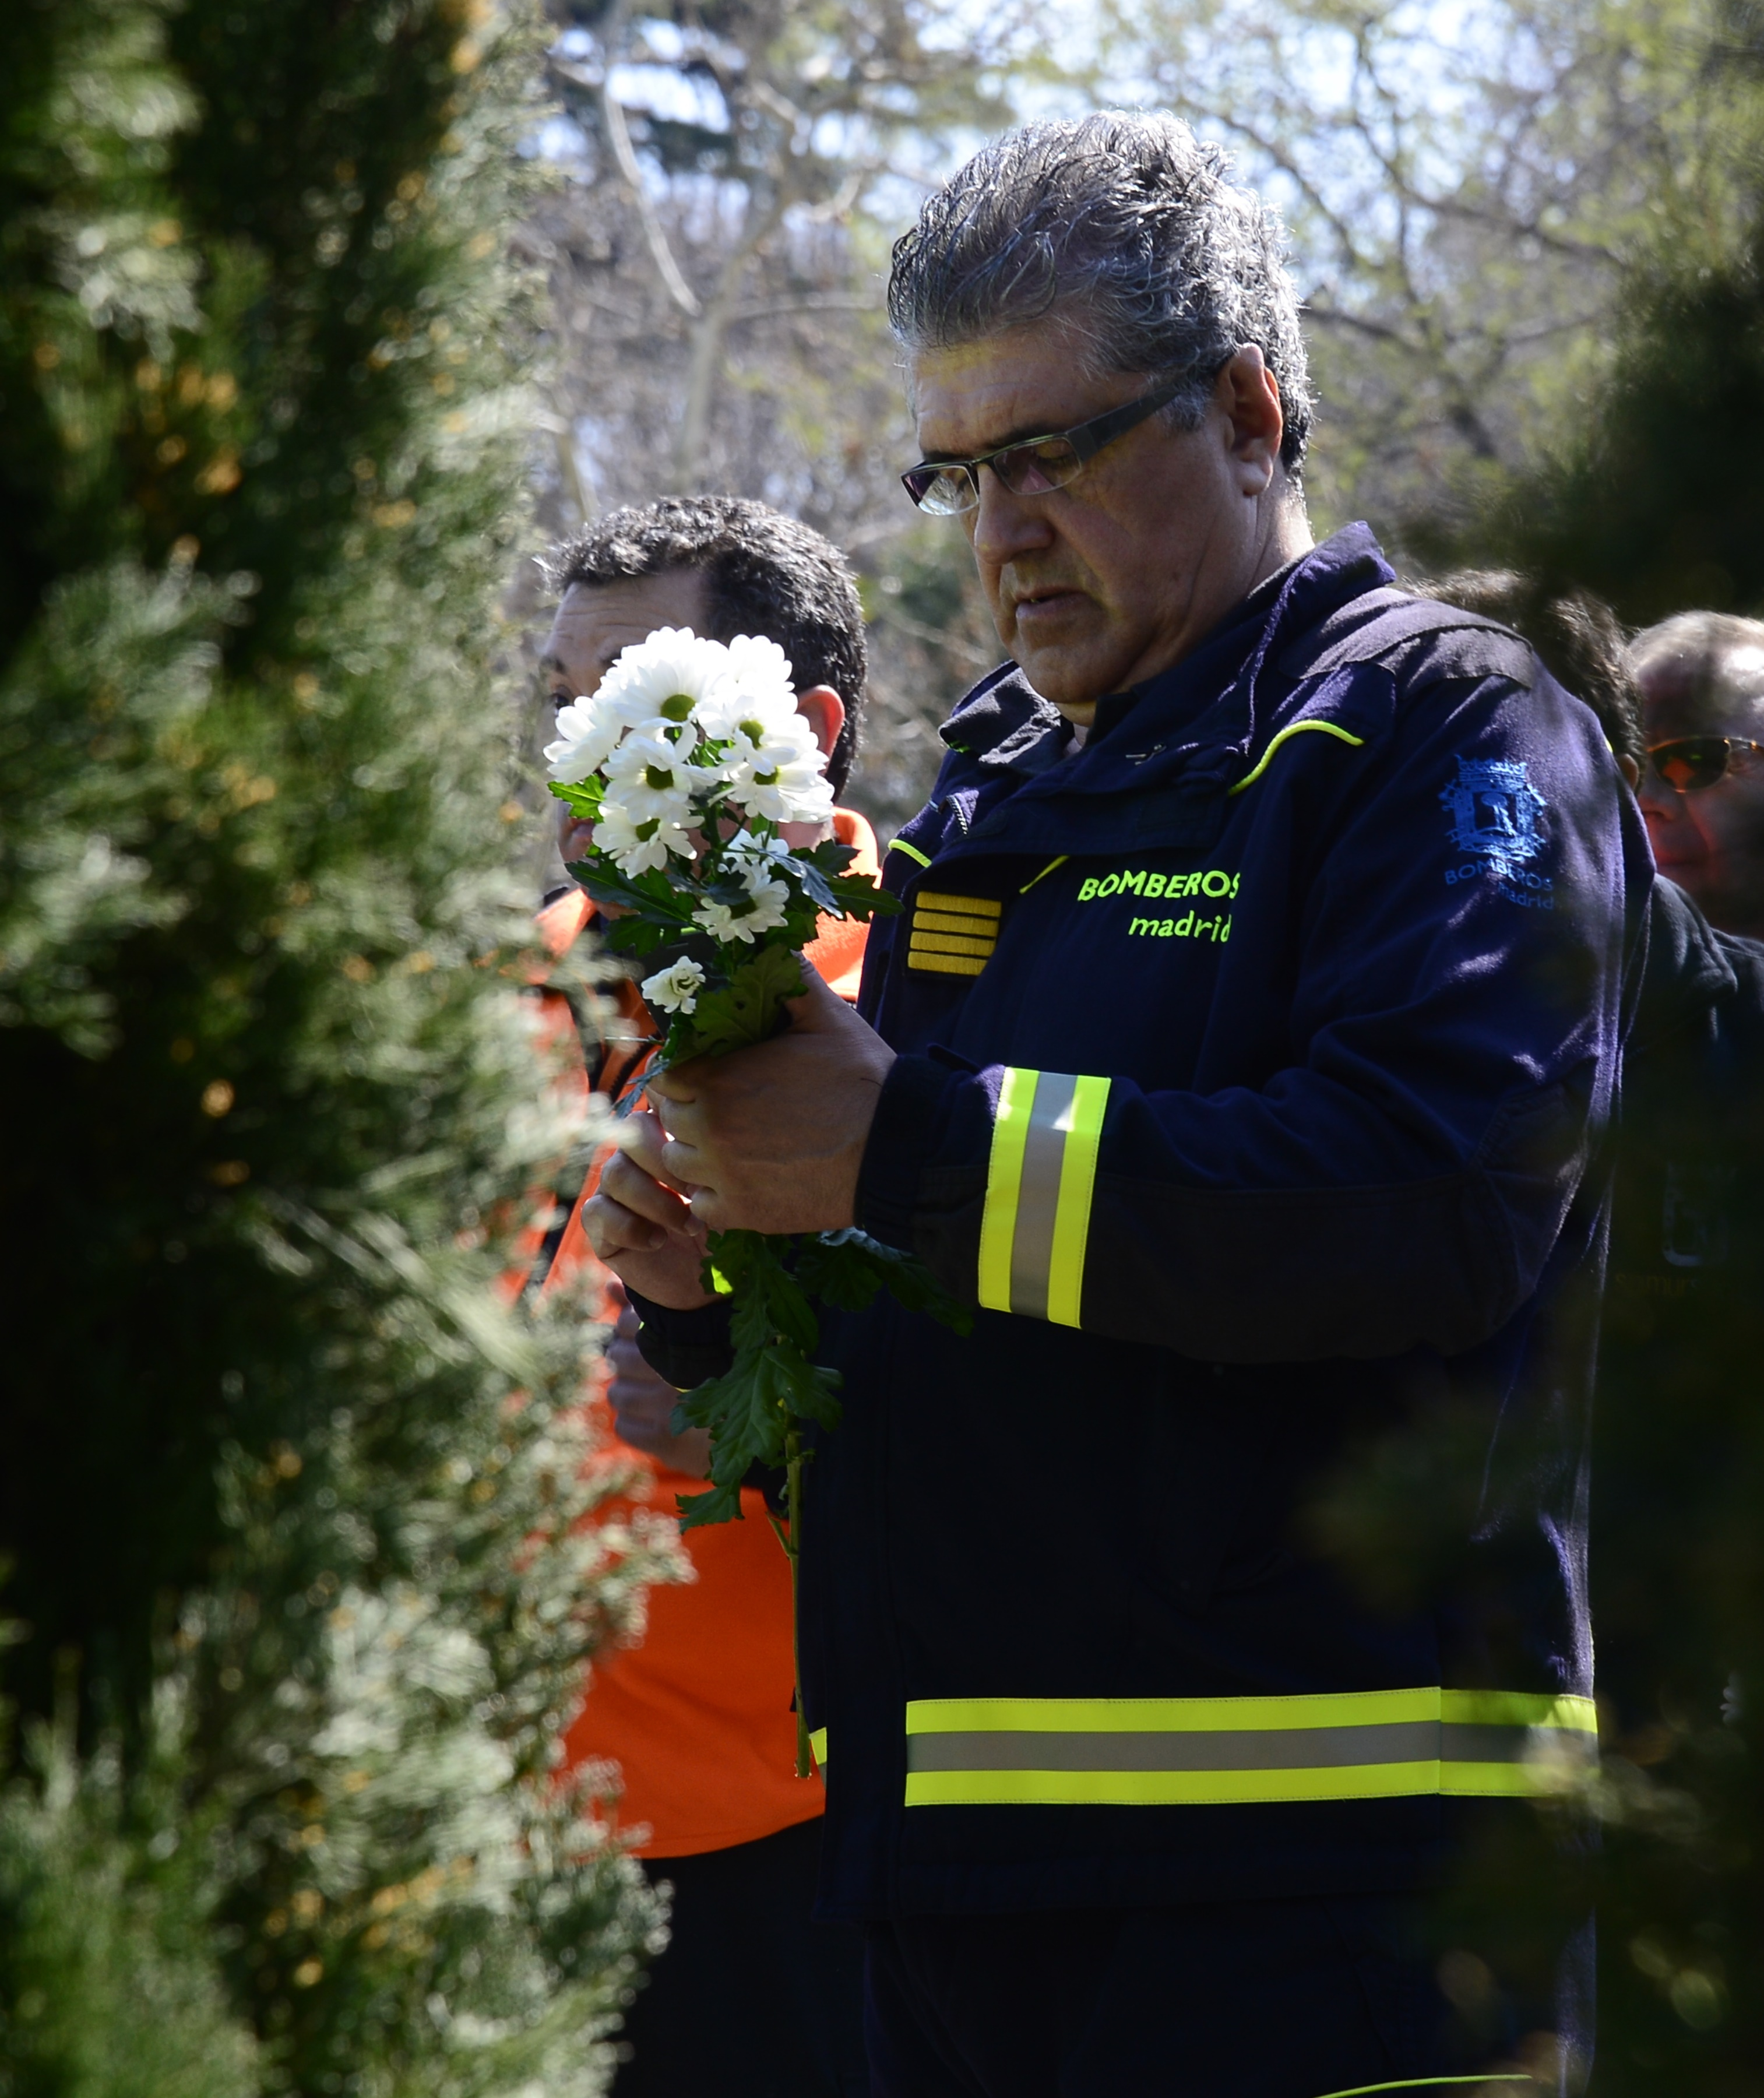 Local Police wait to lays flowers during a commemoration ceremony in held in the Rememberance Garden of Madrid's Retiro Park on March 11, 2014